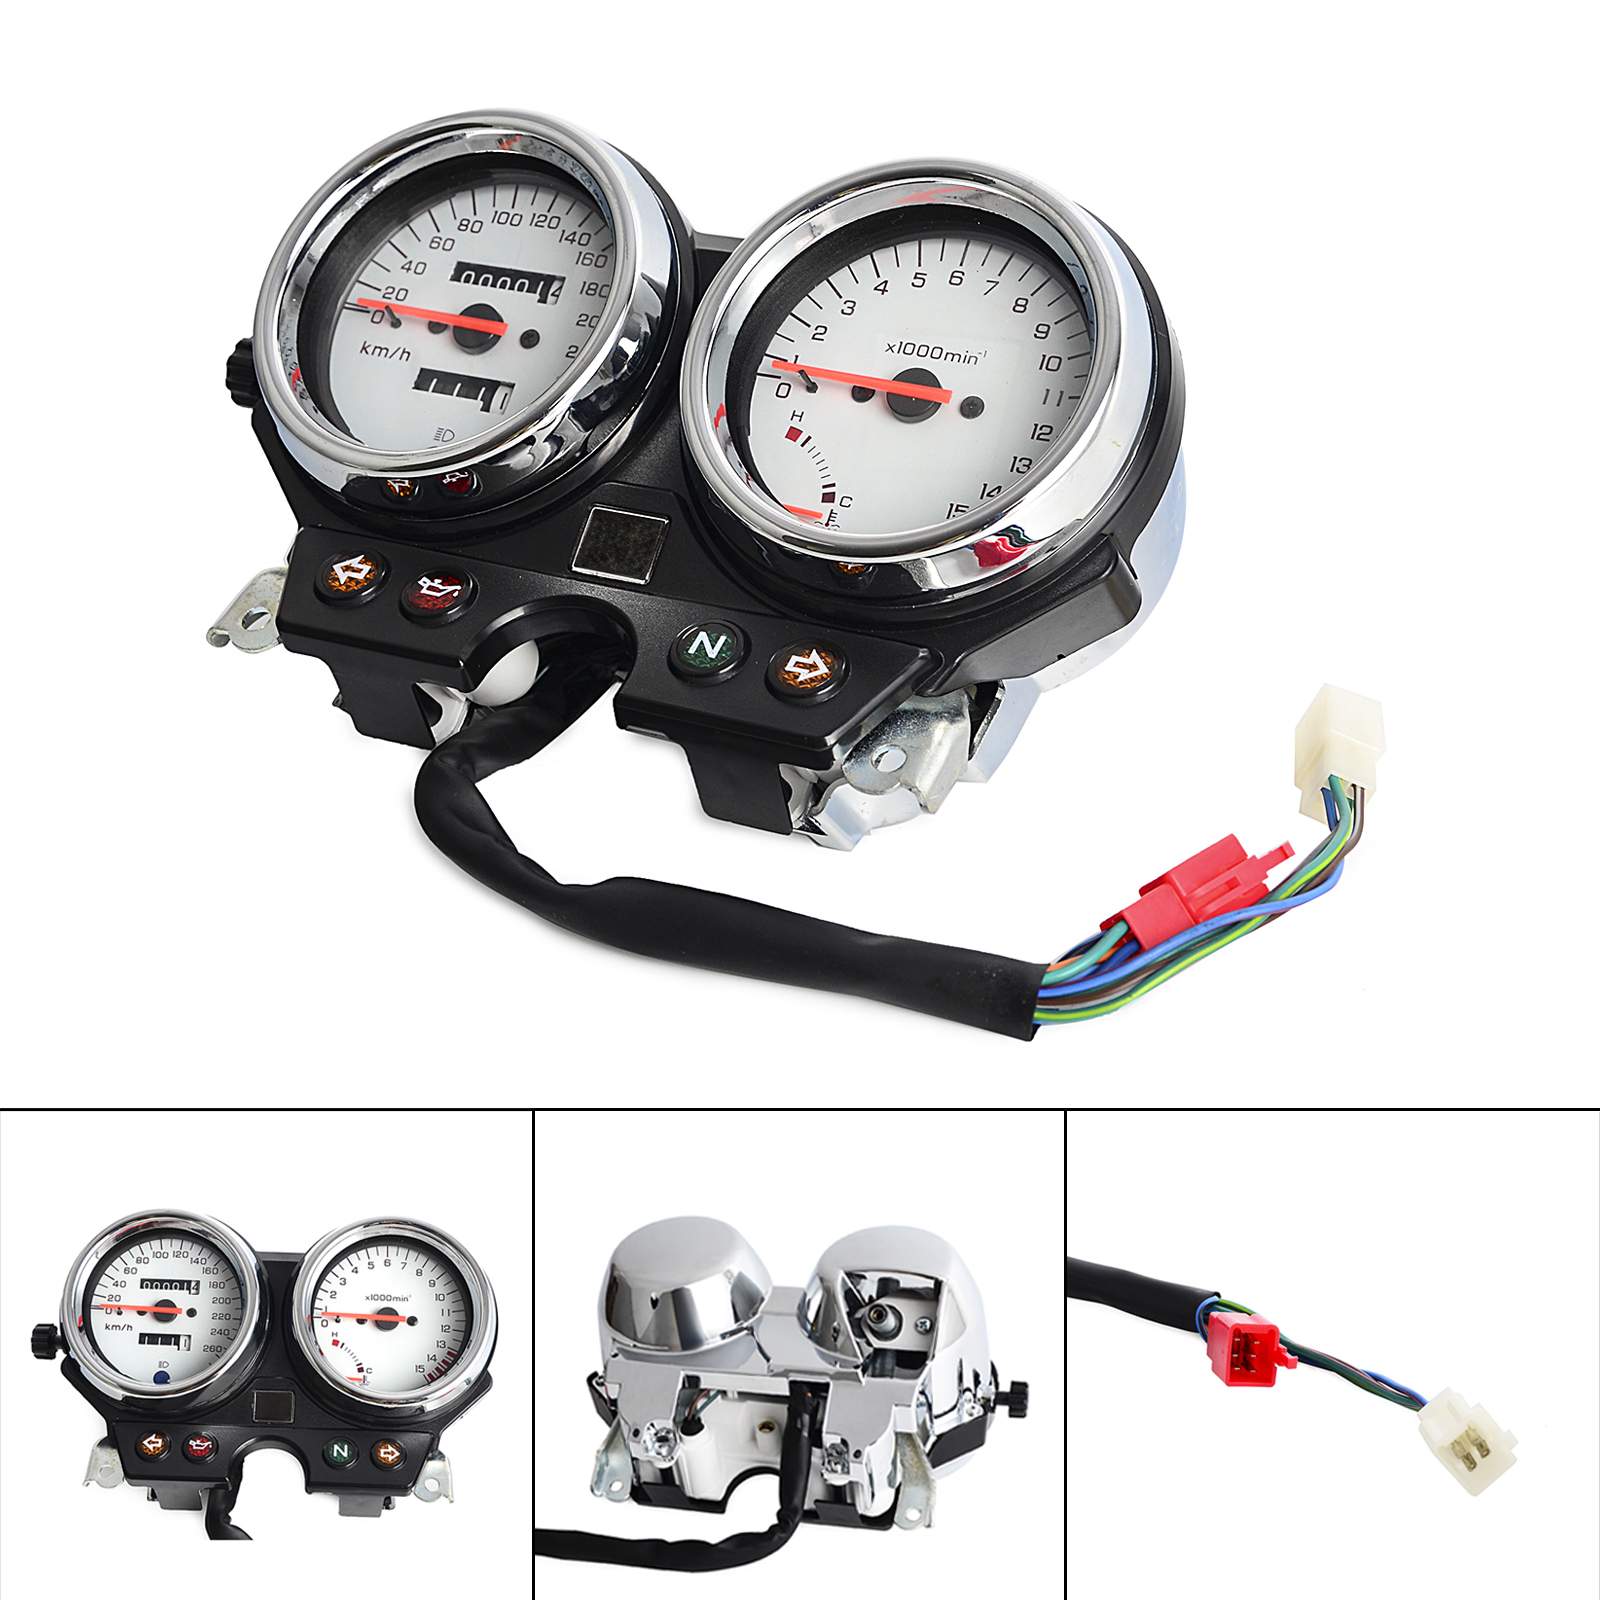 Motorcycle Gauges Cluster Speedometer For <font><b>Honda</b></font> CB600 <font><b>Hornet</b></font> <font><b>600</b></font> 1996 - 2002 1997 1998 1999 2000 <font><b>2001</b></font> Hornet600 NEW image